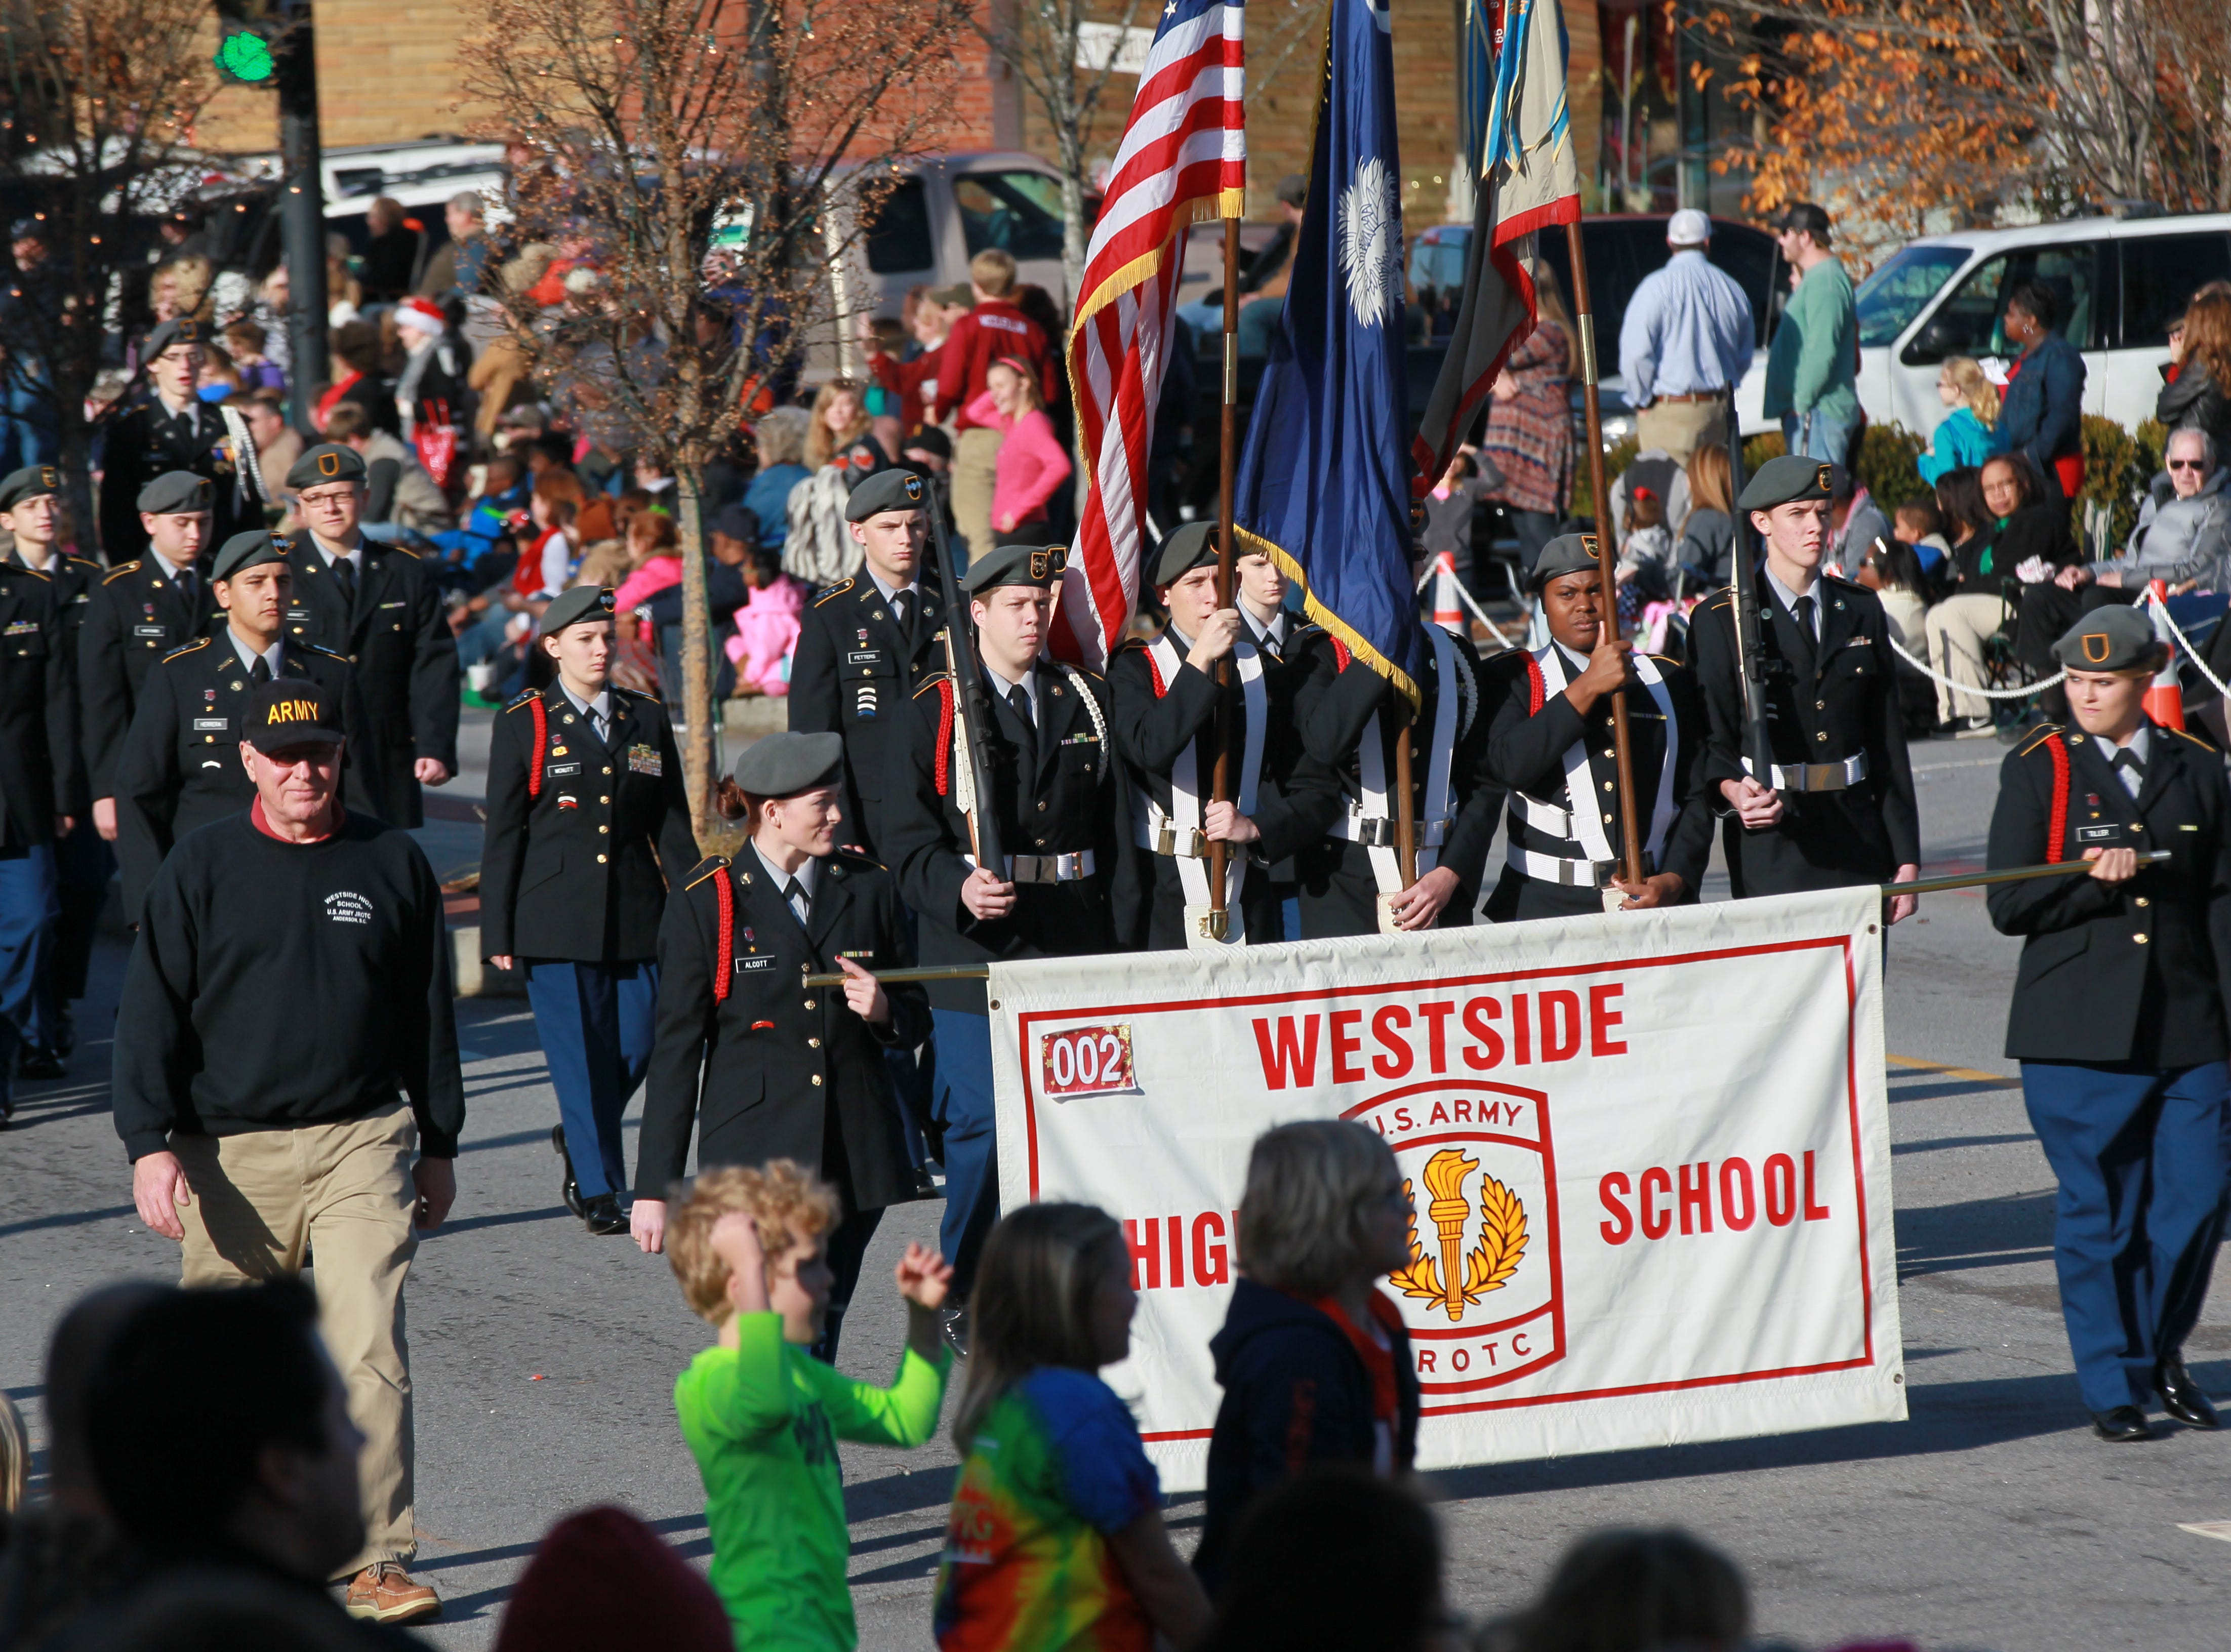 Westside High School Army JROTC in the Anderson Christmas Parade in 2002.